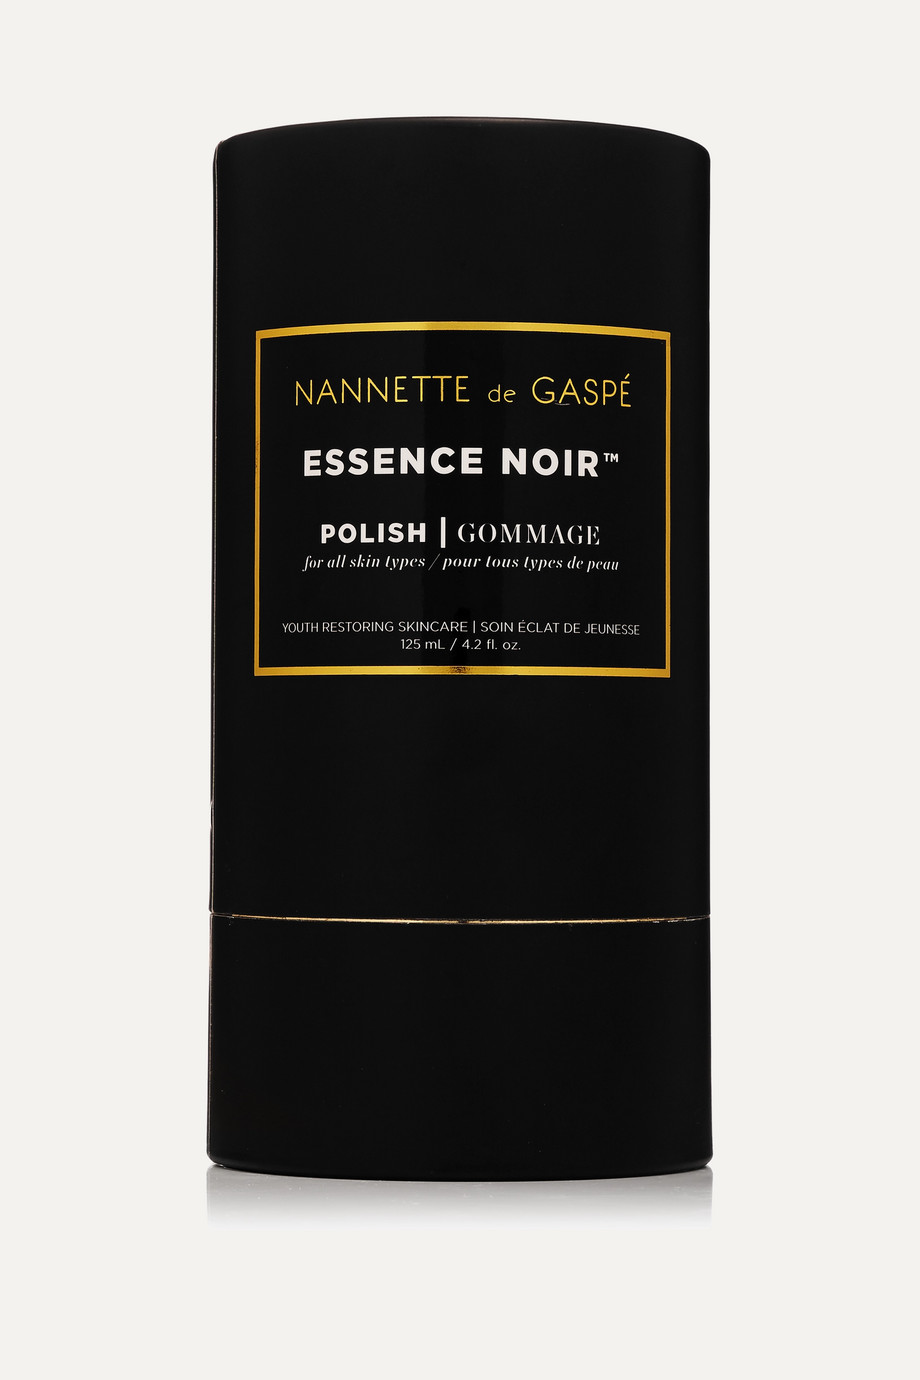 NANNETTE DE GASPÉ Art of Noir - Essence Noir Polish, 125ml